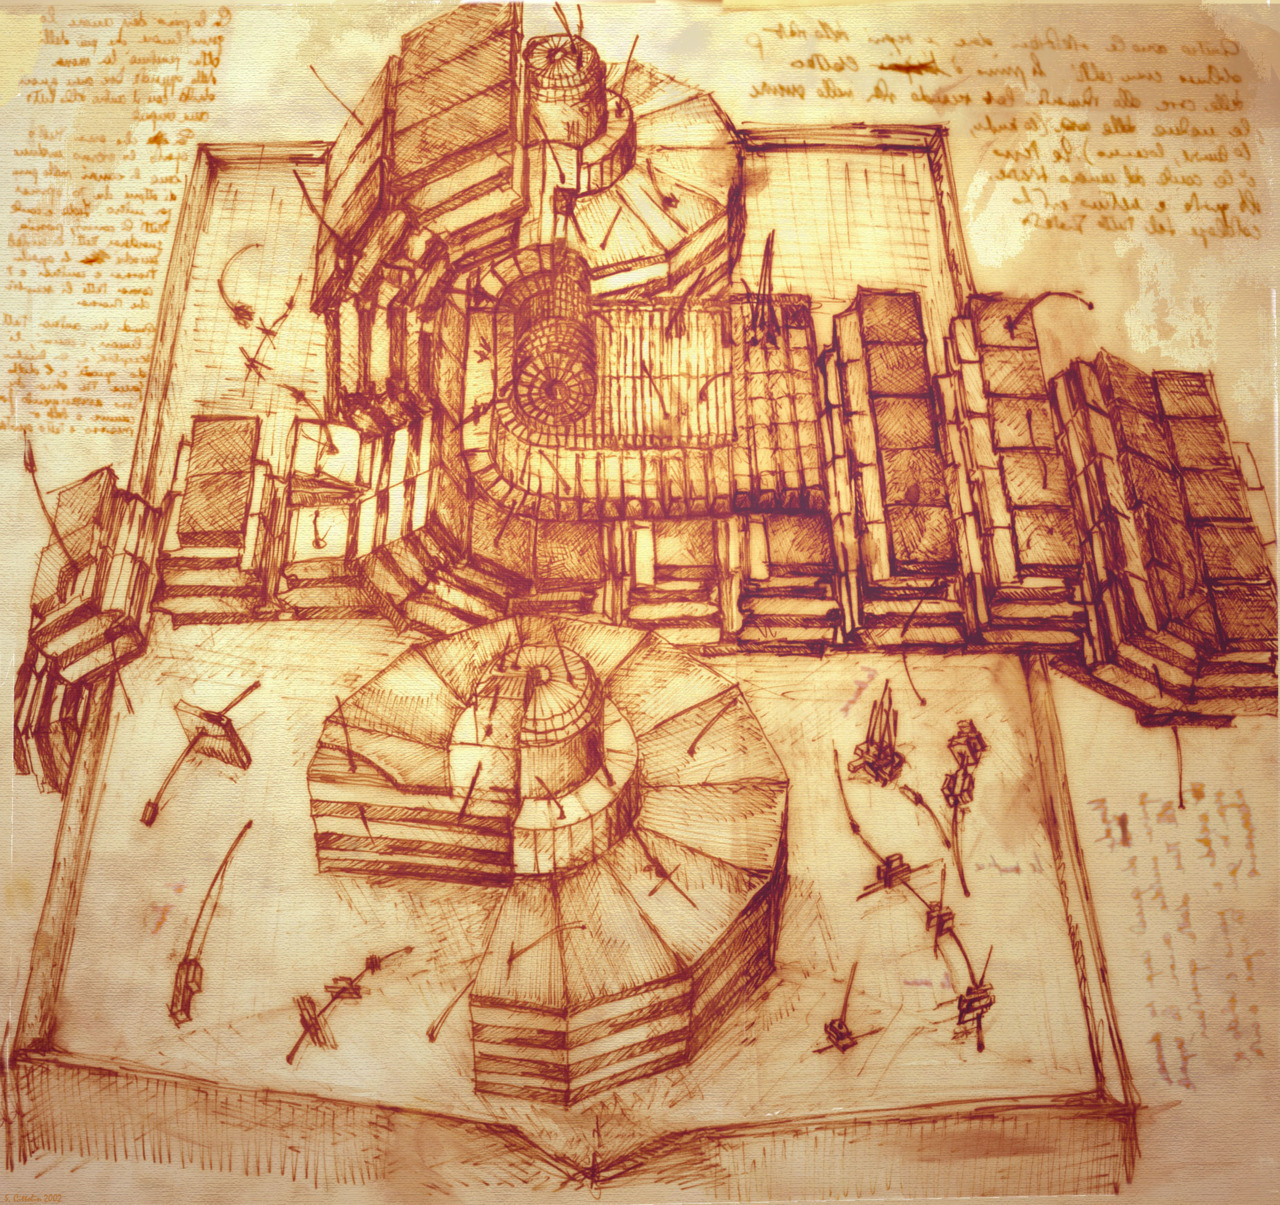 "Drawings of the Large Hadron Collider at CERN, in the style of Leonardo da Vinci Amazing drawing of the LHC at CERN by Dr. Sergio Cittolin in the style of Leonardo Da Vinci.   Dr. Cittolin has worked at CERN for the past 30 years as a research physicist.  The idea, according to the physicist, was to simply ""present the idea of data analysis to the world within the naturalist world of Leonardo.""  You can view the full gallery at the source link."